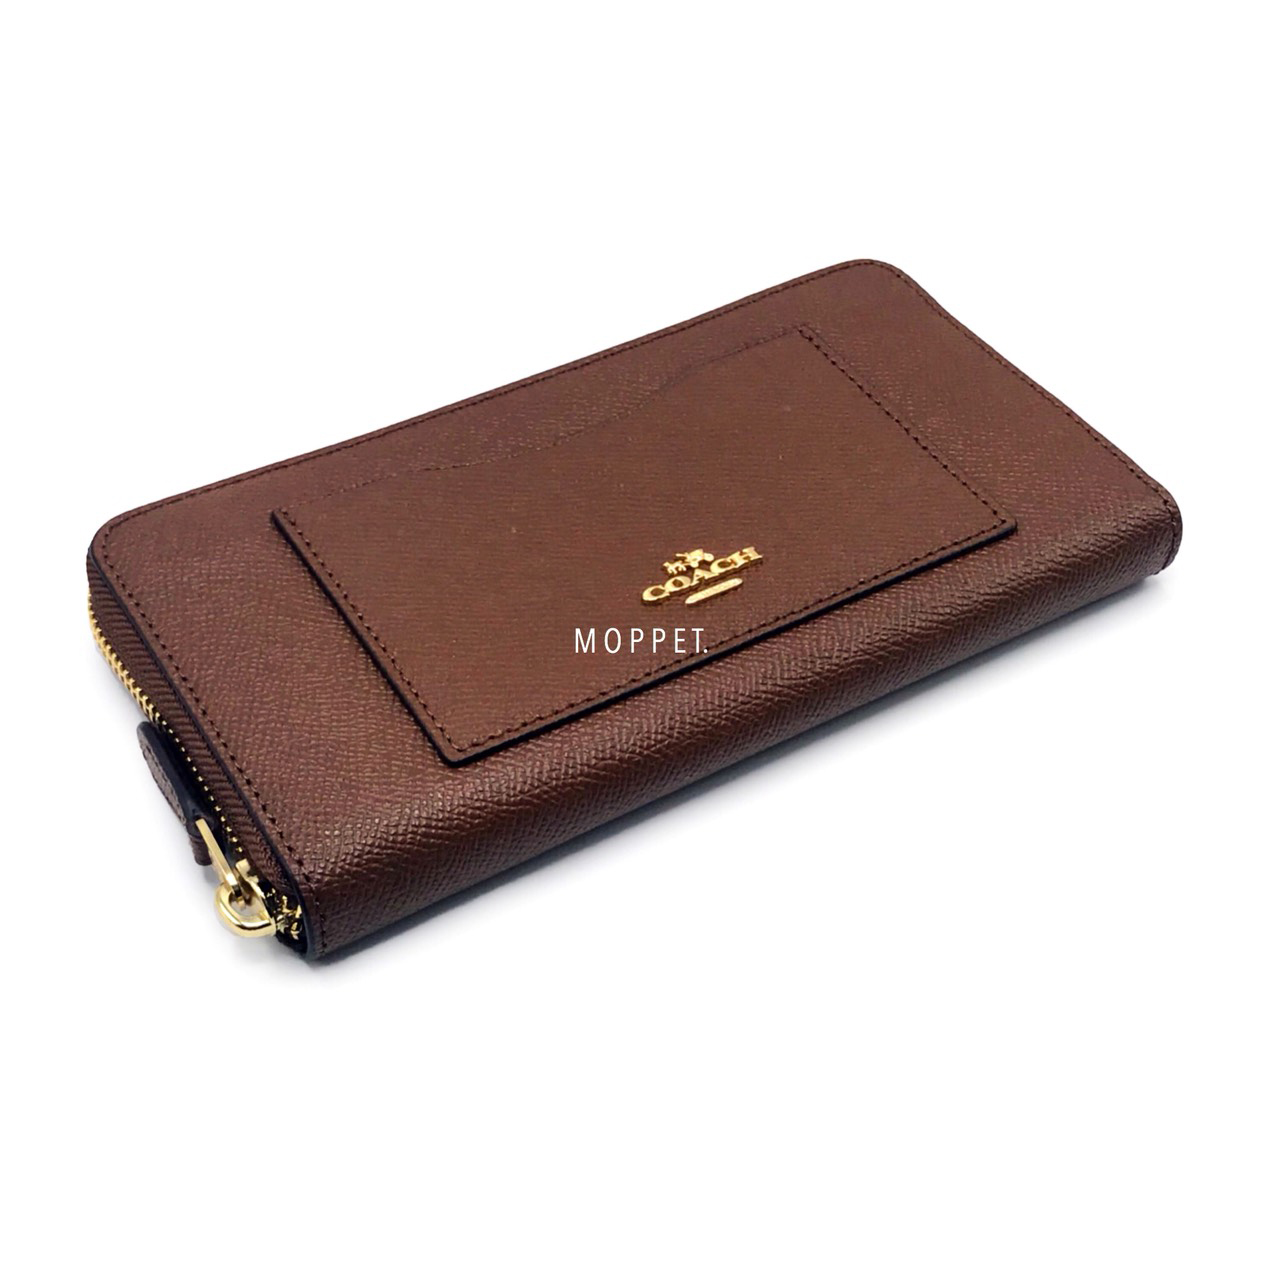 New Coach Accordeon Wallet in Saddle Leather GHW